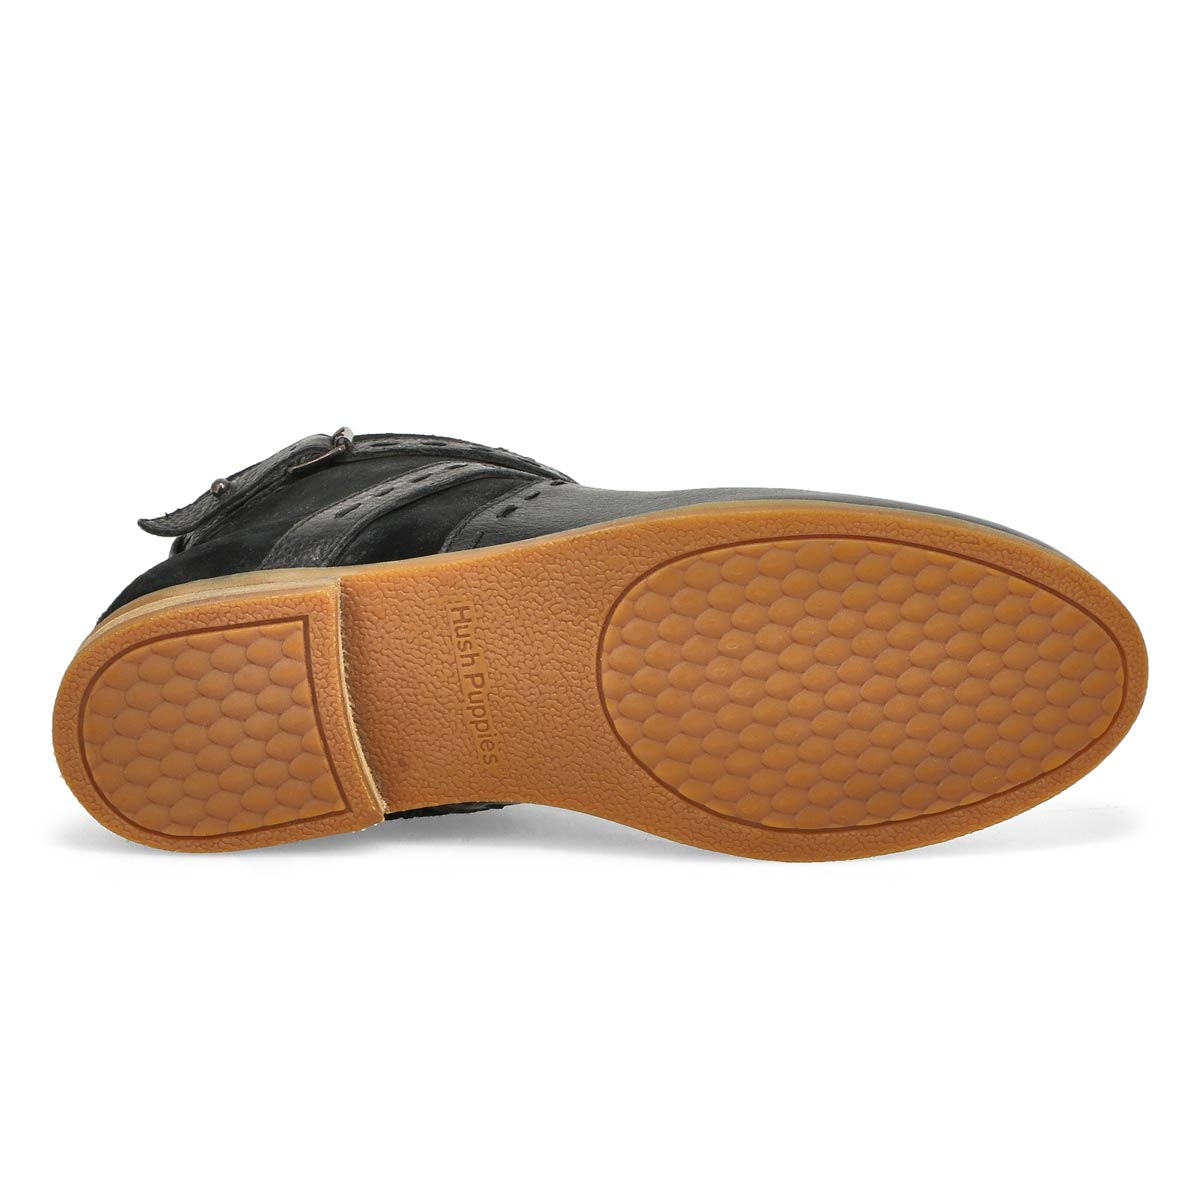 Lds Chardon Belt black casual ankle boot